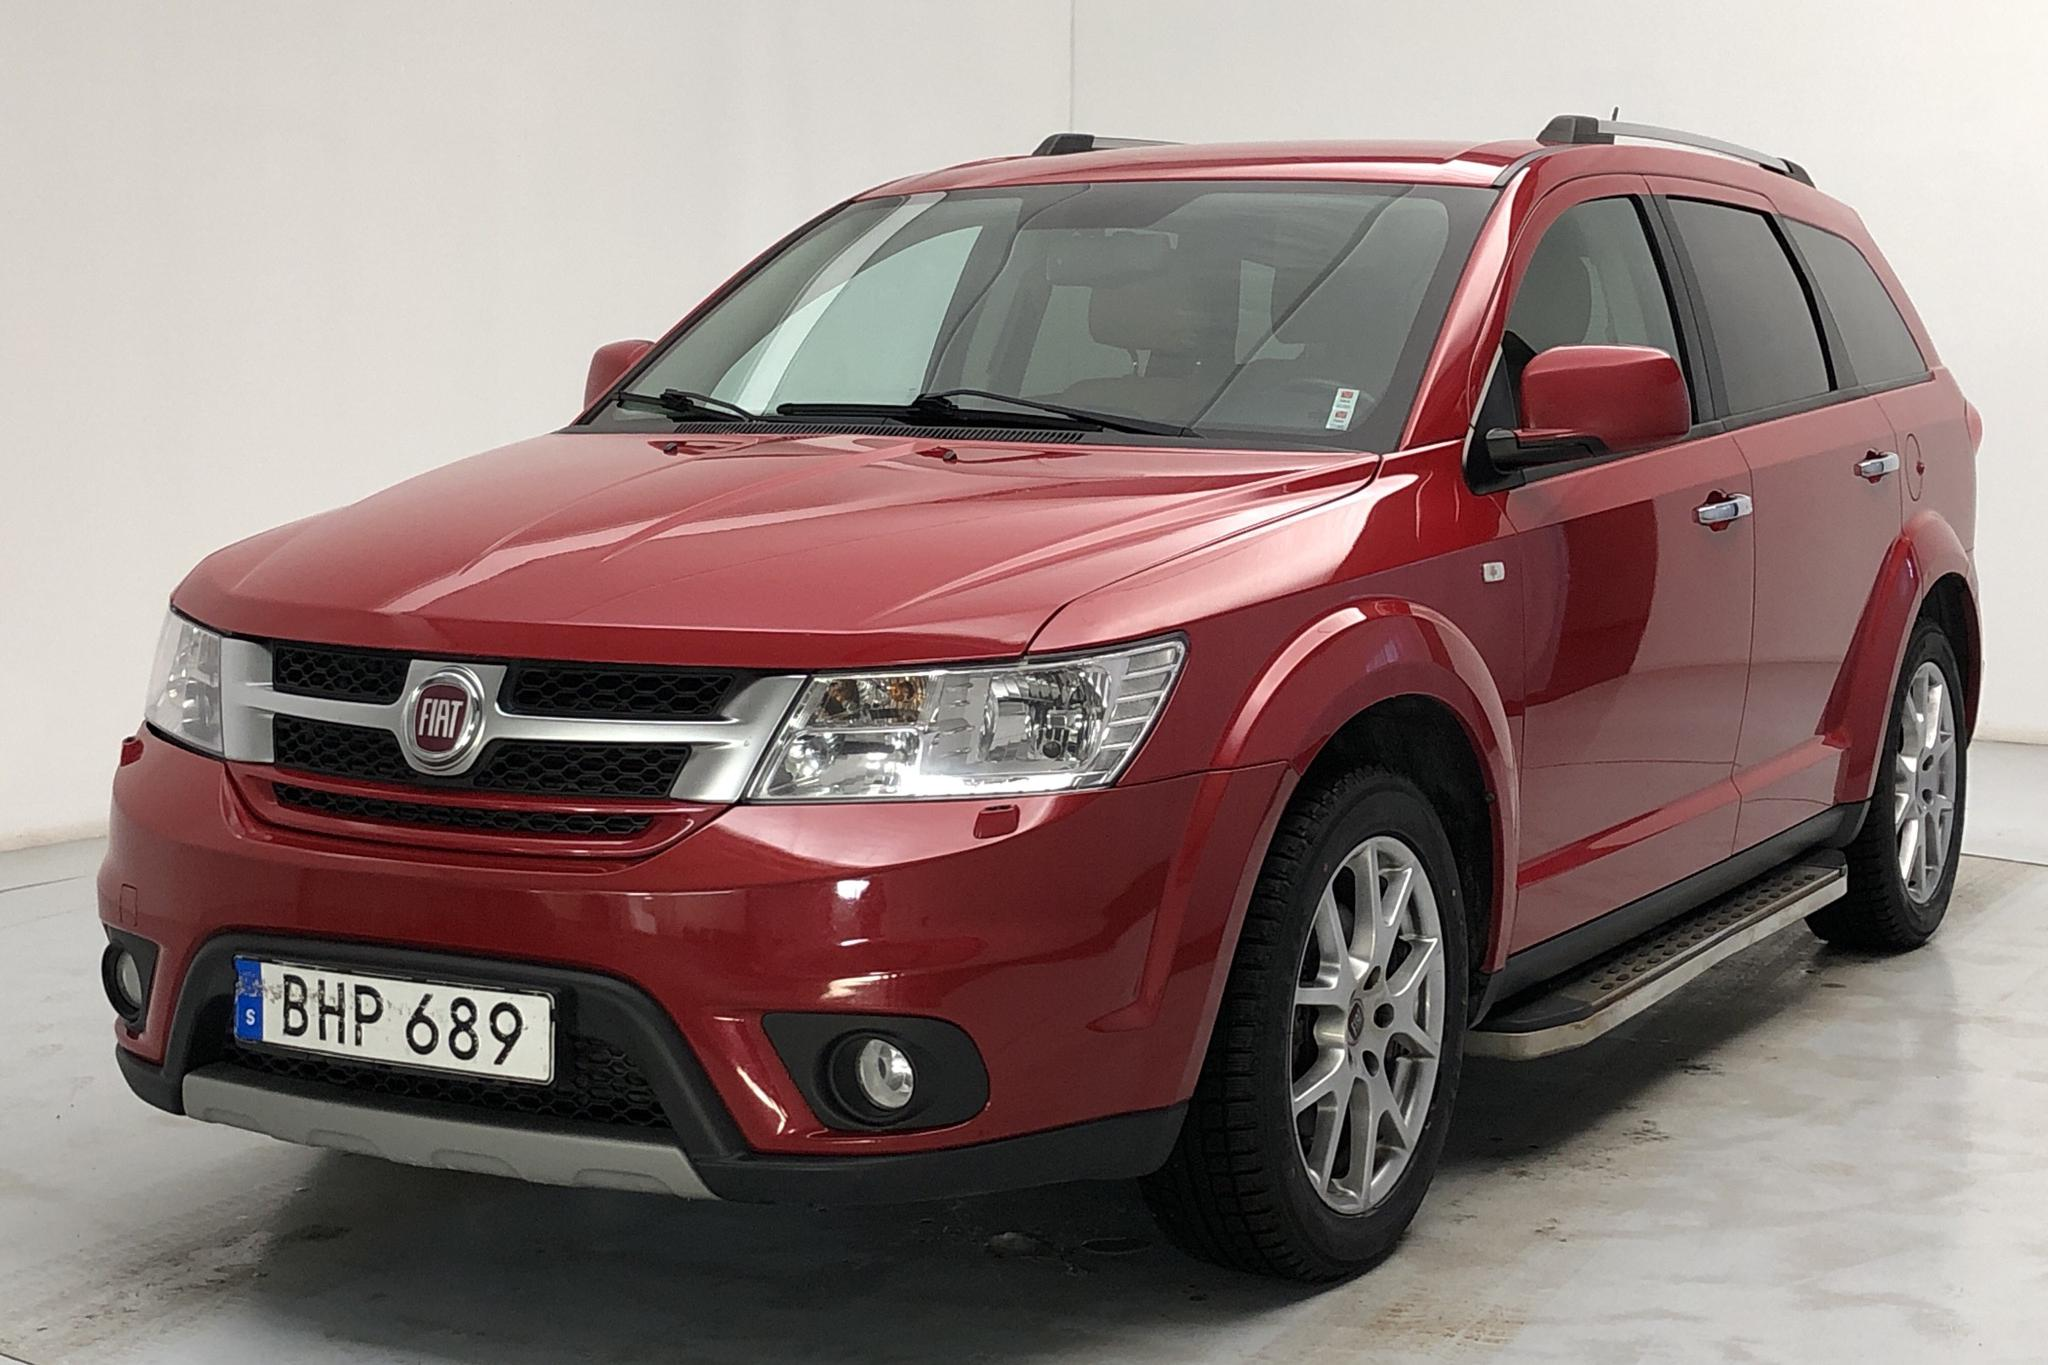 Fiat Freemont 2.0 Multijet AWD (170hk) - 154 540 km - Automatic - red - 2014